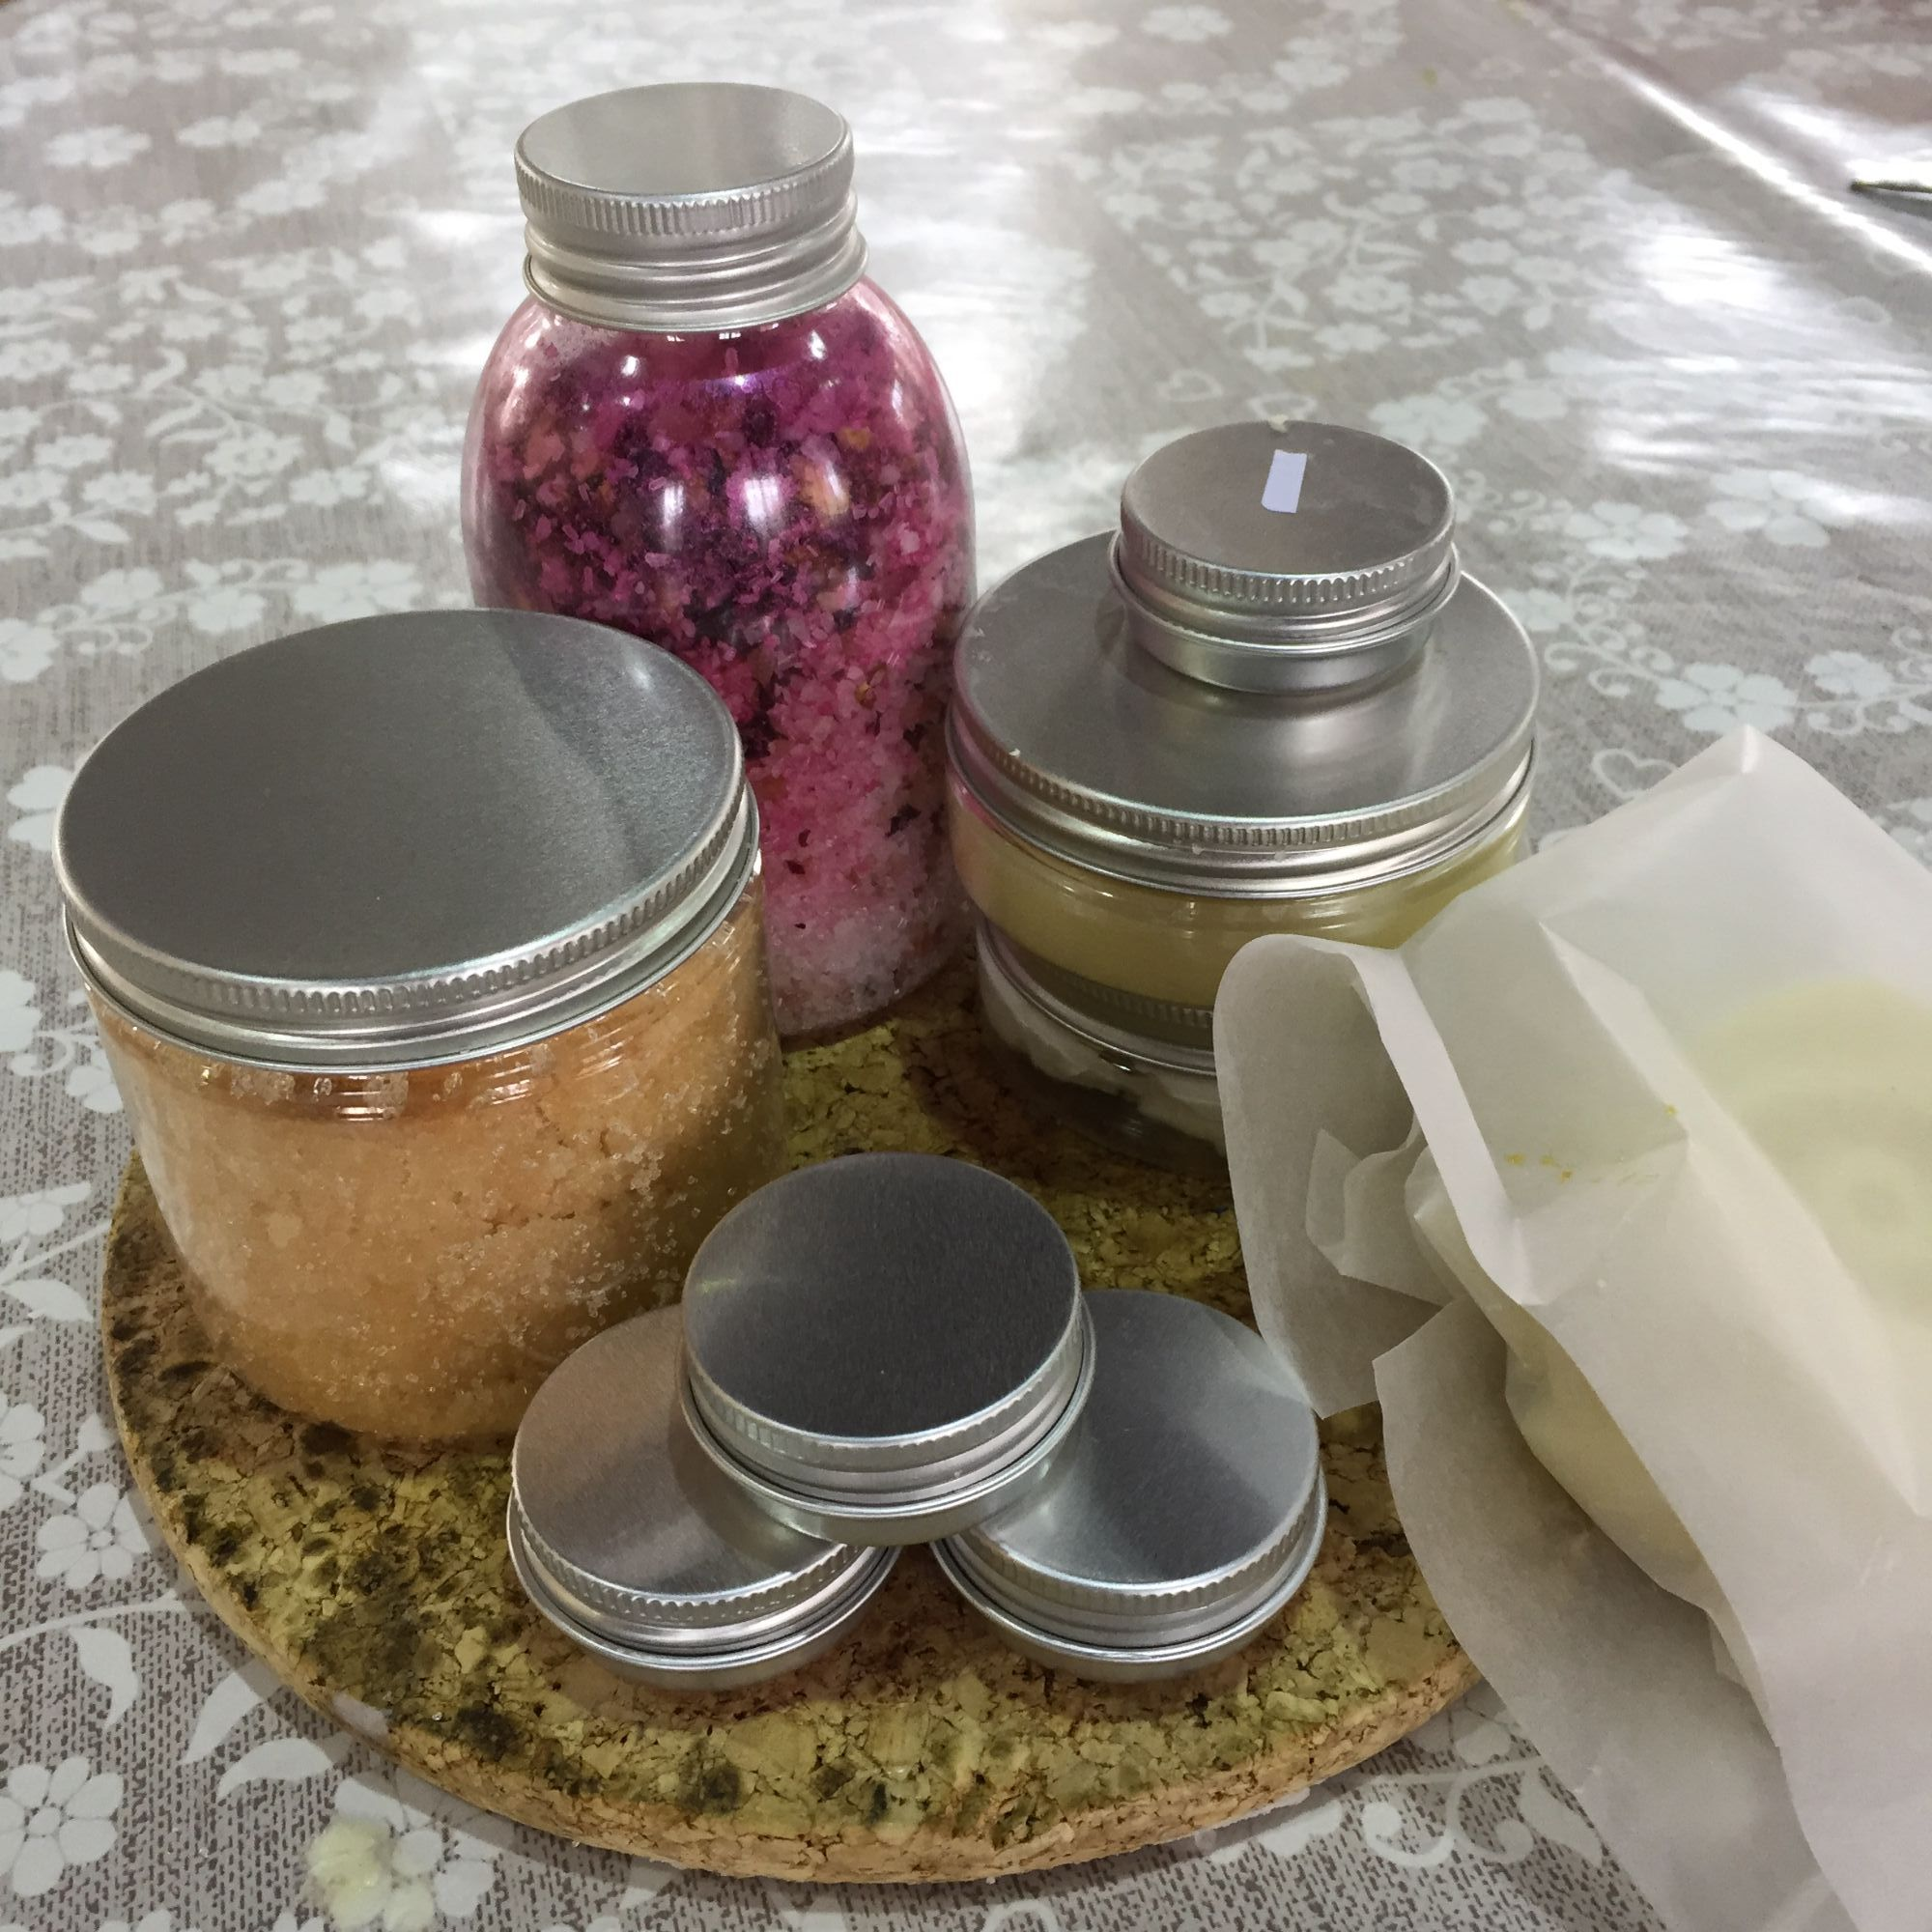 Bath and Body Products Workshop - The Results